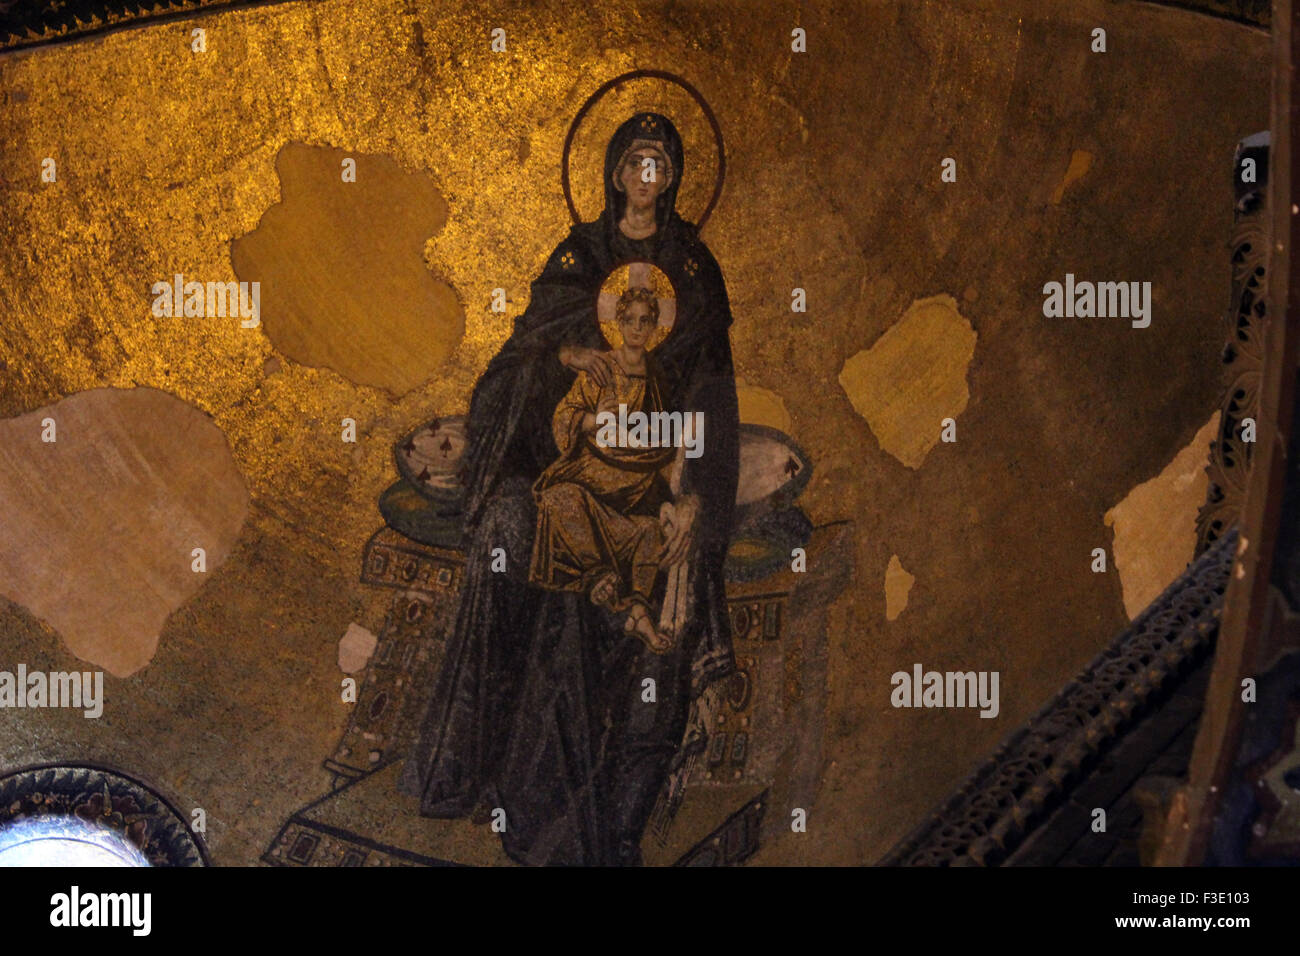 Virgin and The Child mosaic image in the apse of Hagia Sophia Museum in Istanbul. Stock Photo